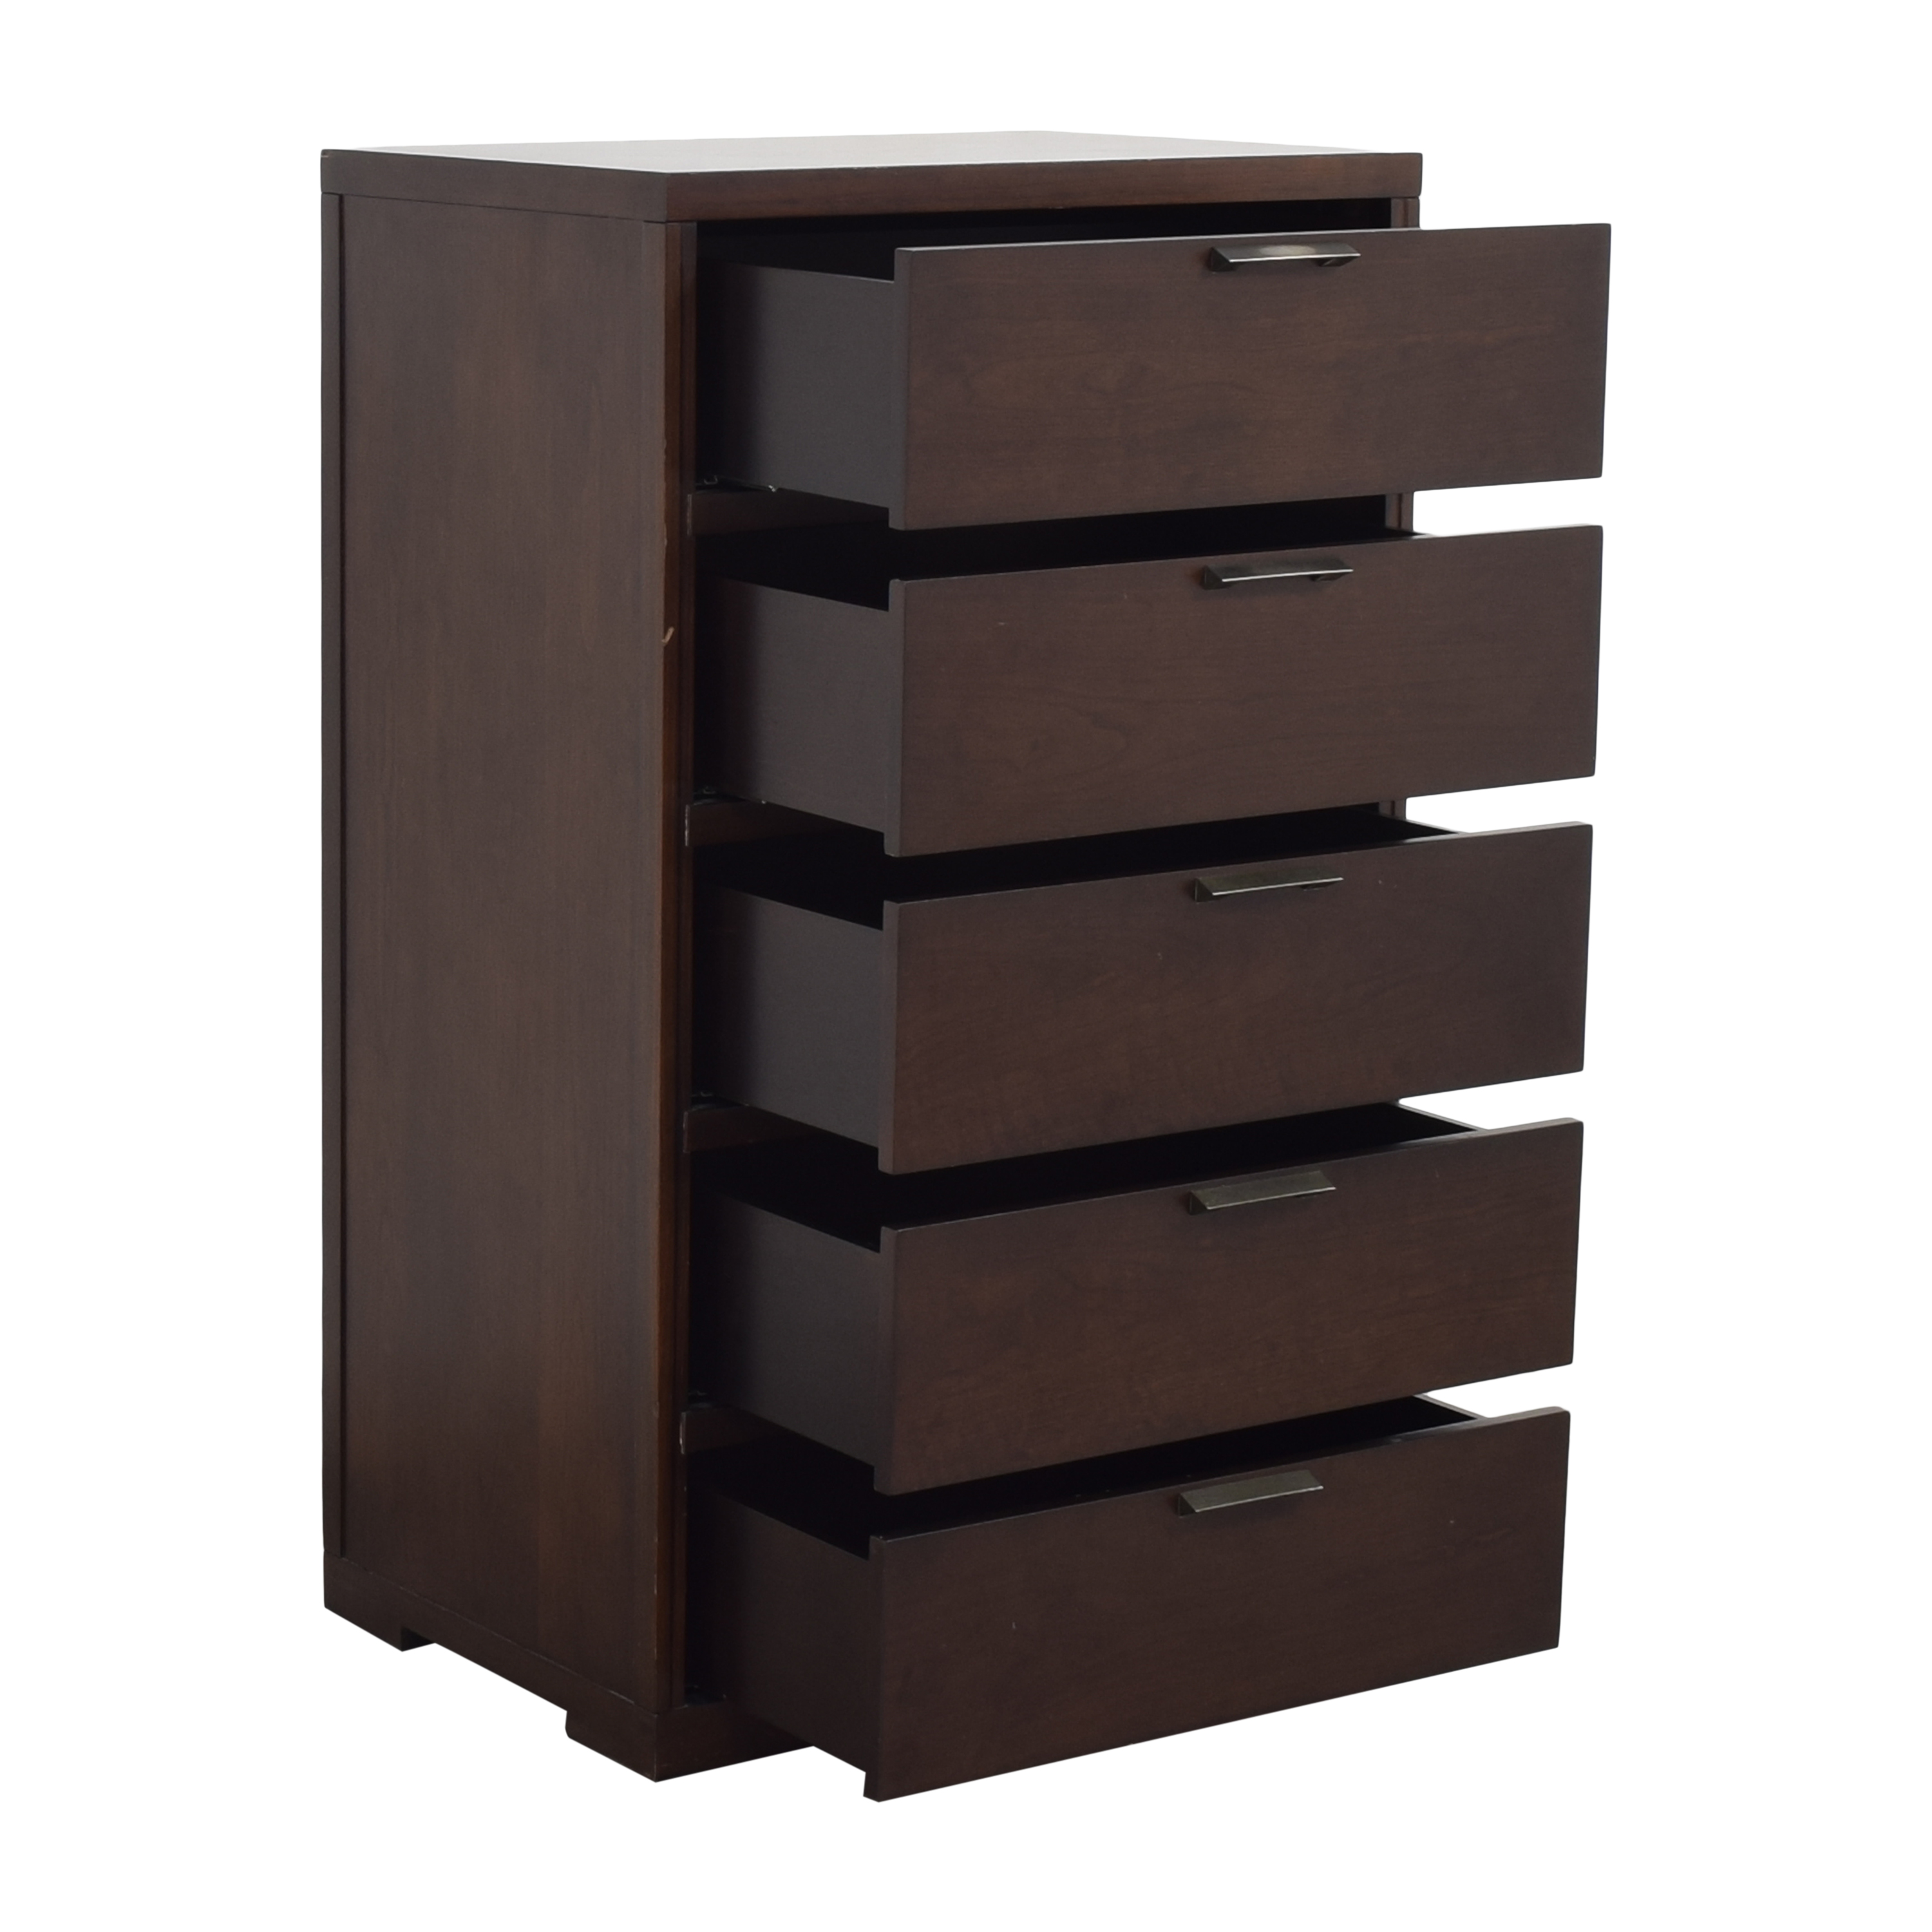 Crate & Barrel Crate & Barrel Asher Five Drawer Chest discount